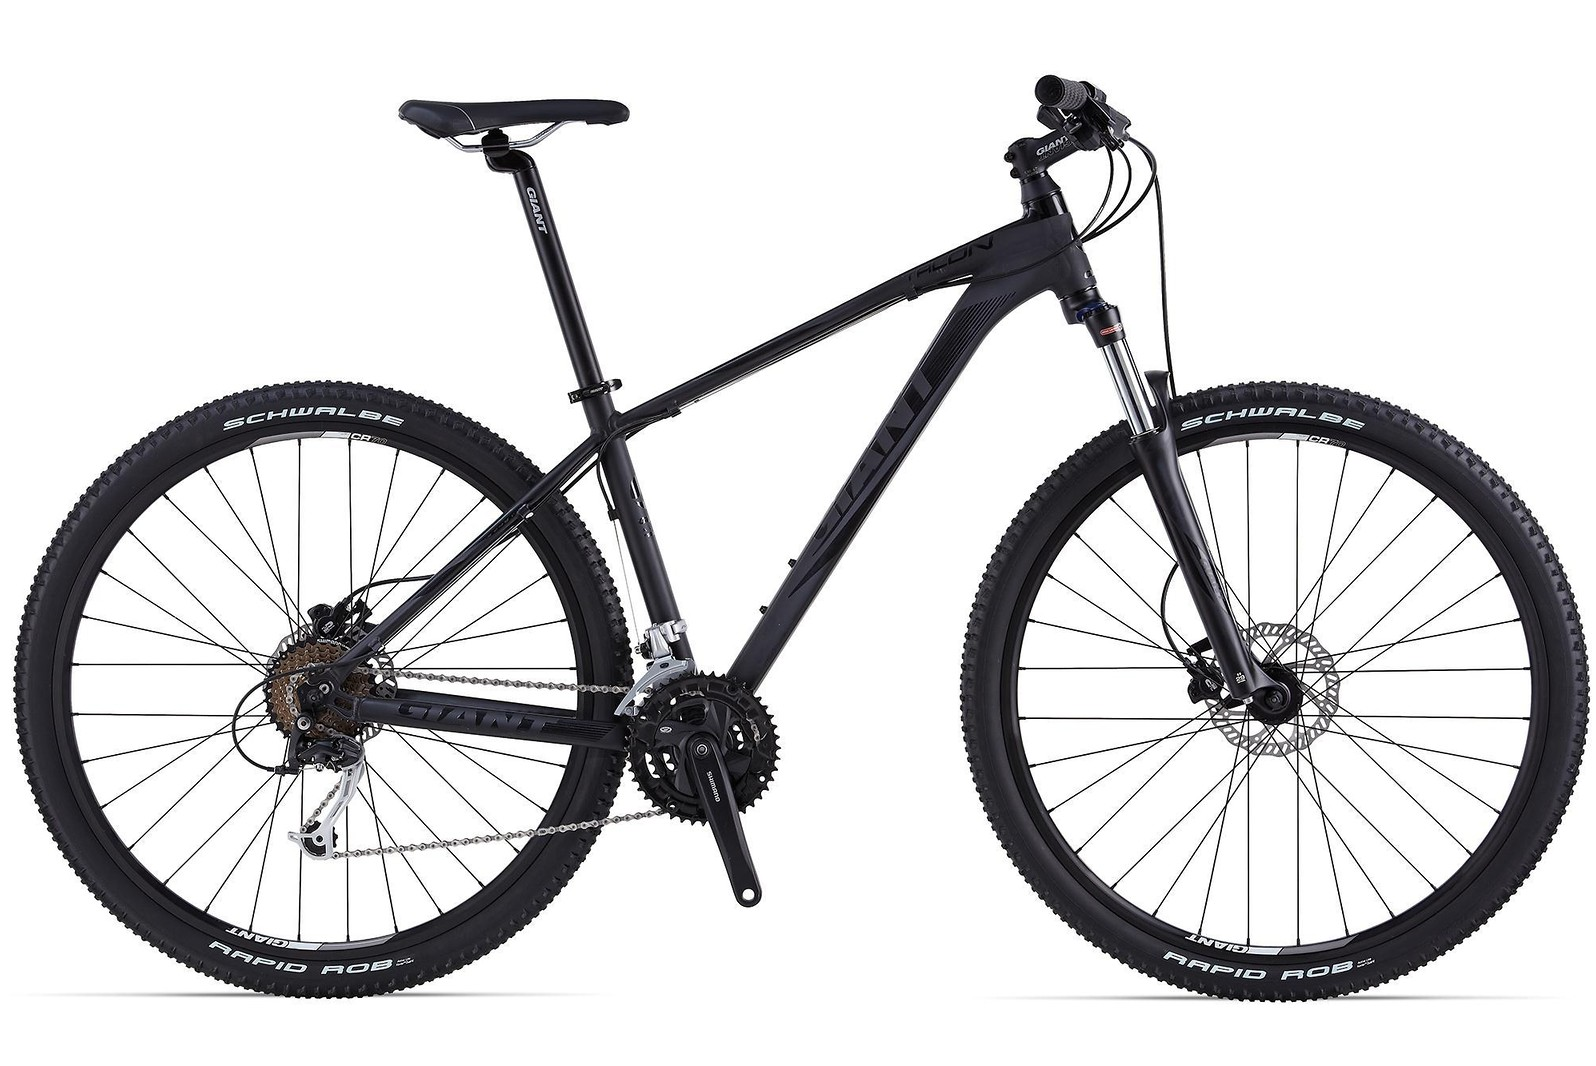 2014 Giant Talon 29er 2 Bike Talon_29er_2